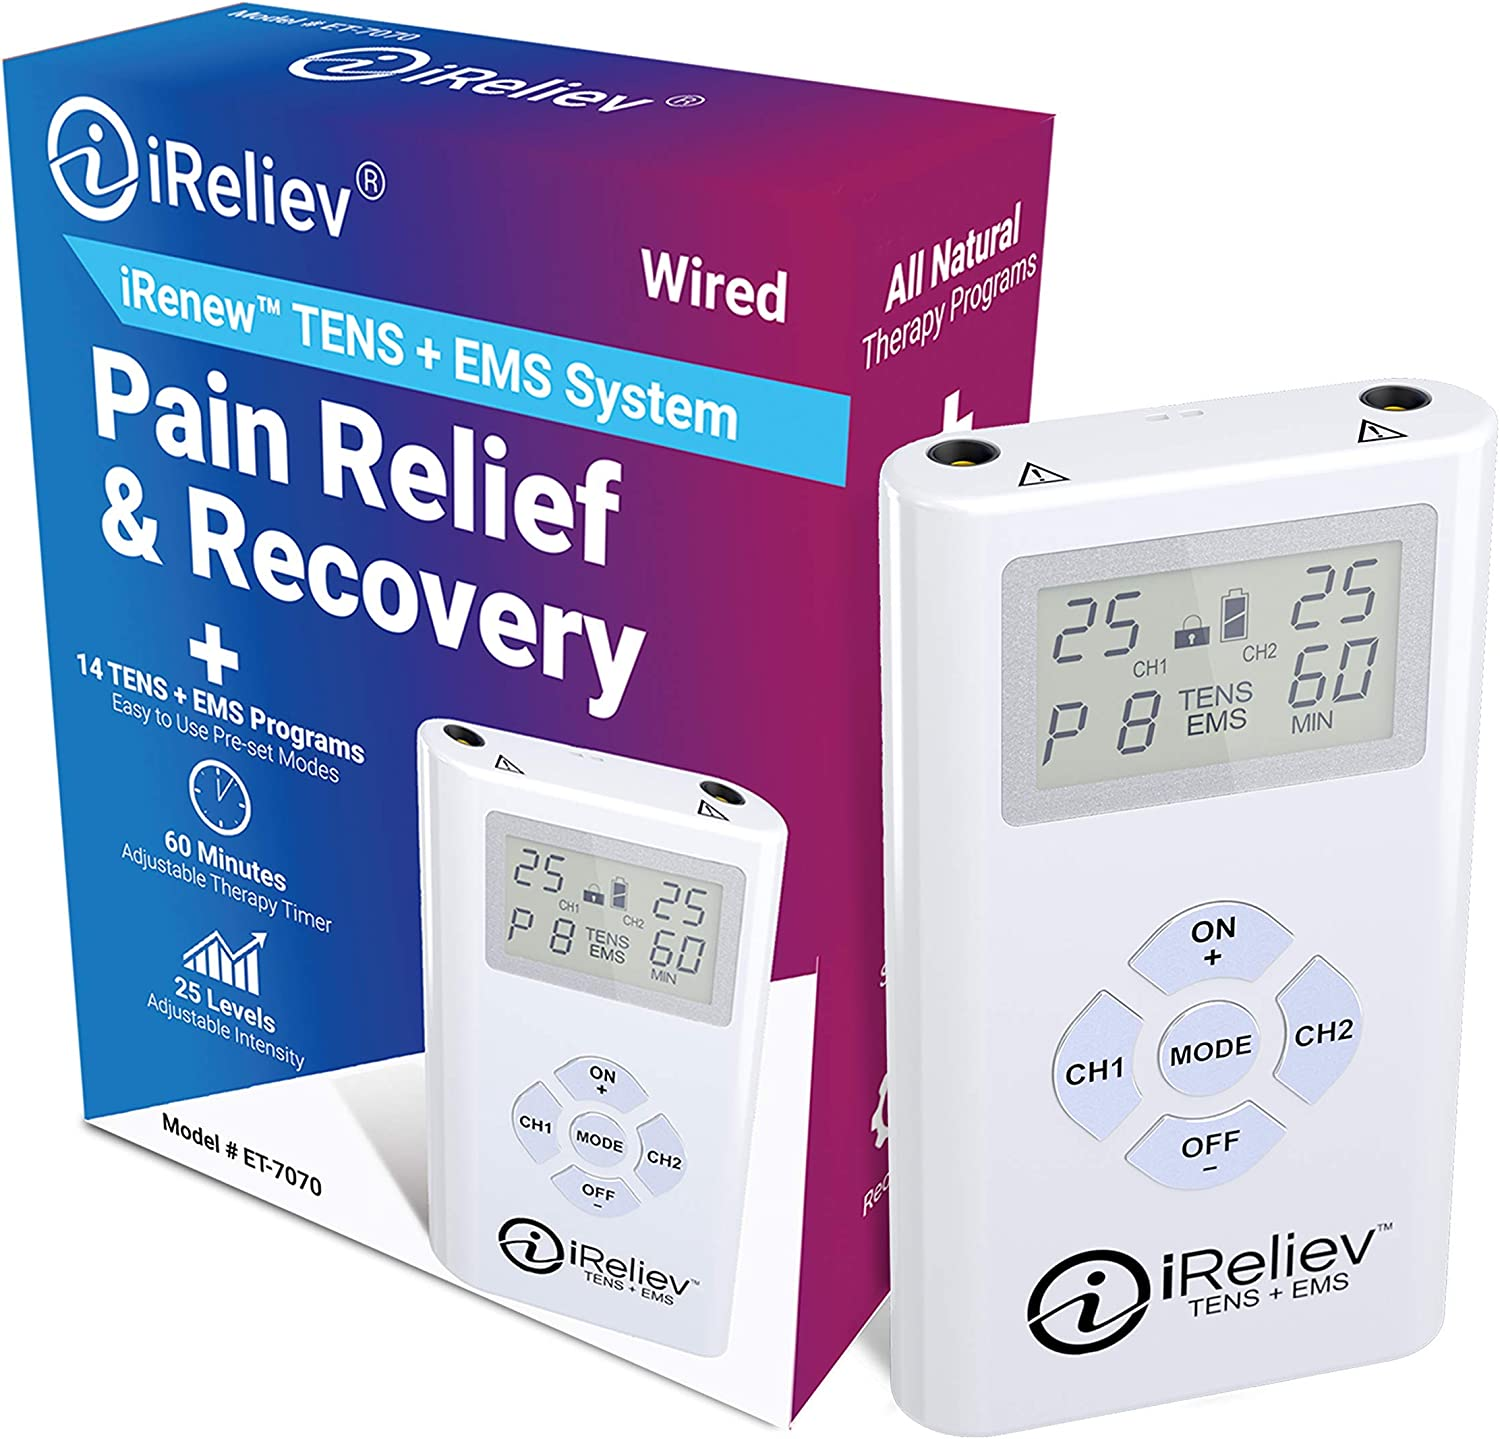 iReliev TENS + EMS Combination Unit Muscle Stimulator for Pain Relief & Arthritis & Muscle Strength - Treats Tired and Sore Muscles in Your Shoulders, Back, Ab's, Legs, Knee's and More: Health & Personal Care